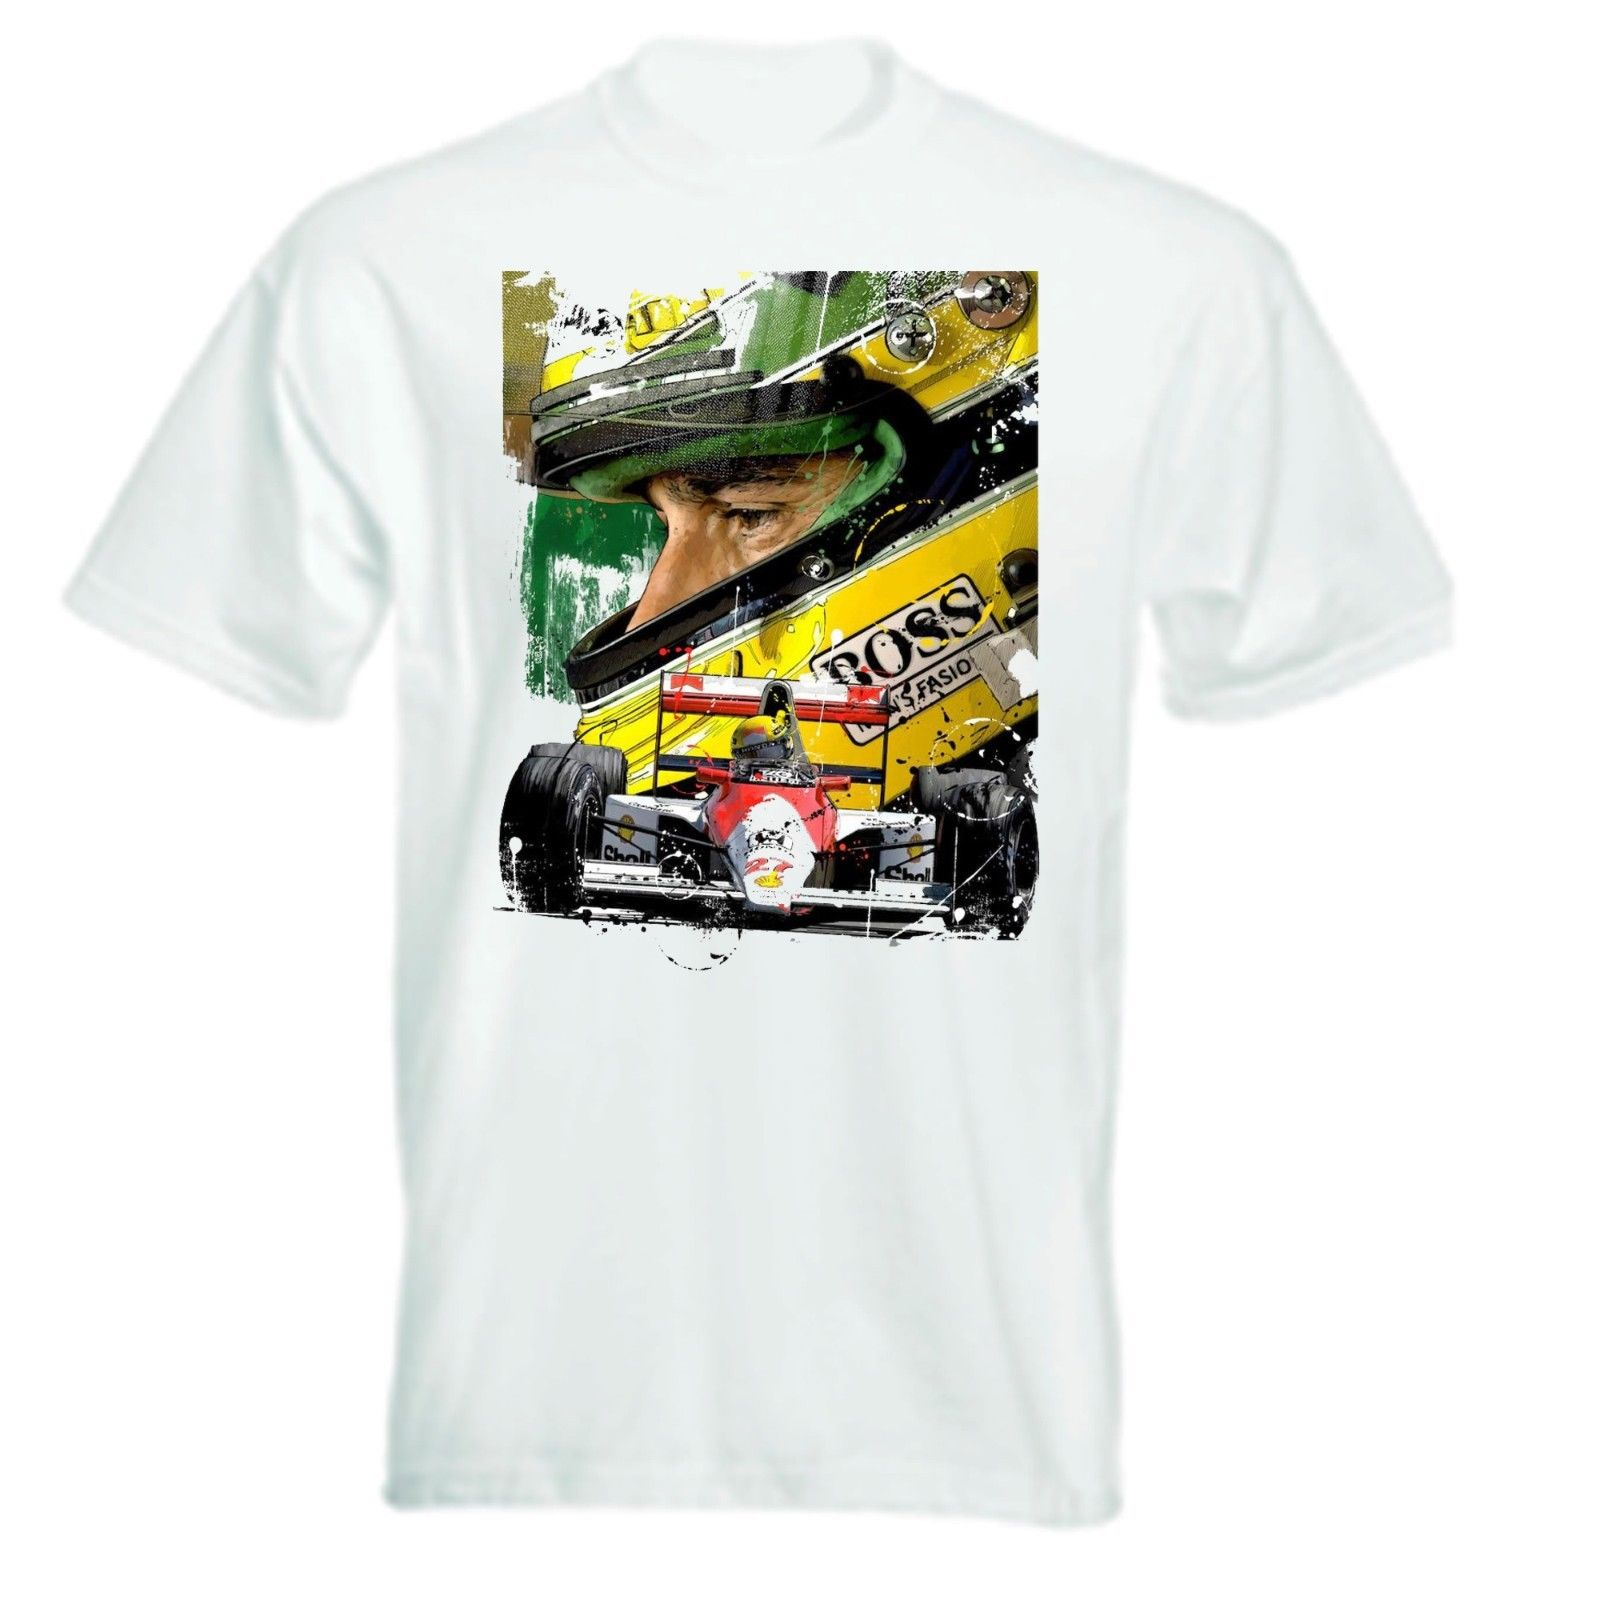 AYRTON SENNA ARTWORK T SHIRT Top Quality T Shirts Men O Neck Short Sleeve Cotton T Shirts Man Clothing Letter Printing